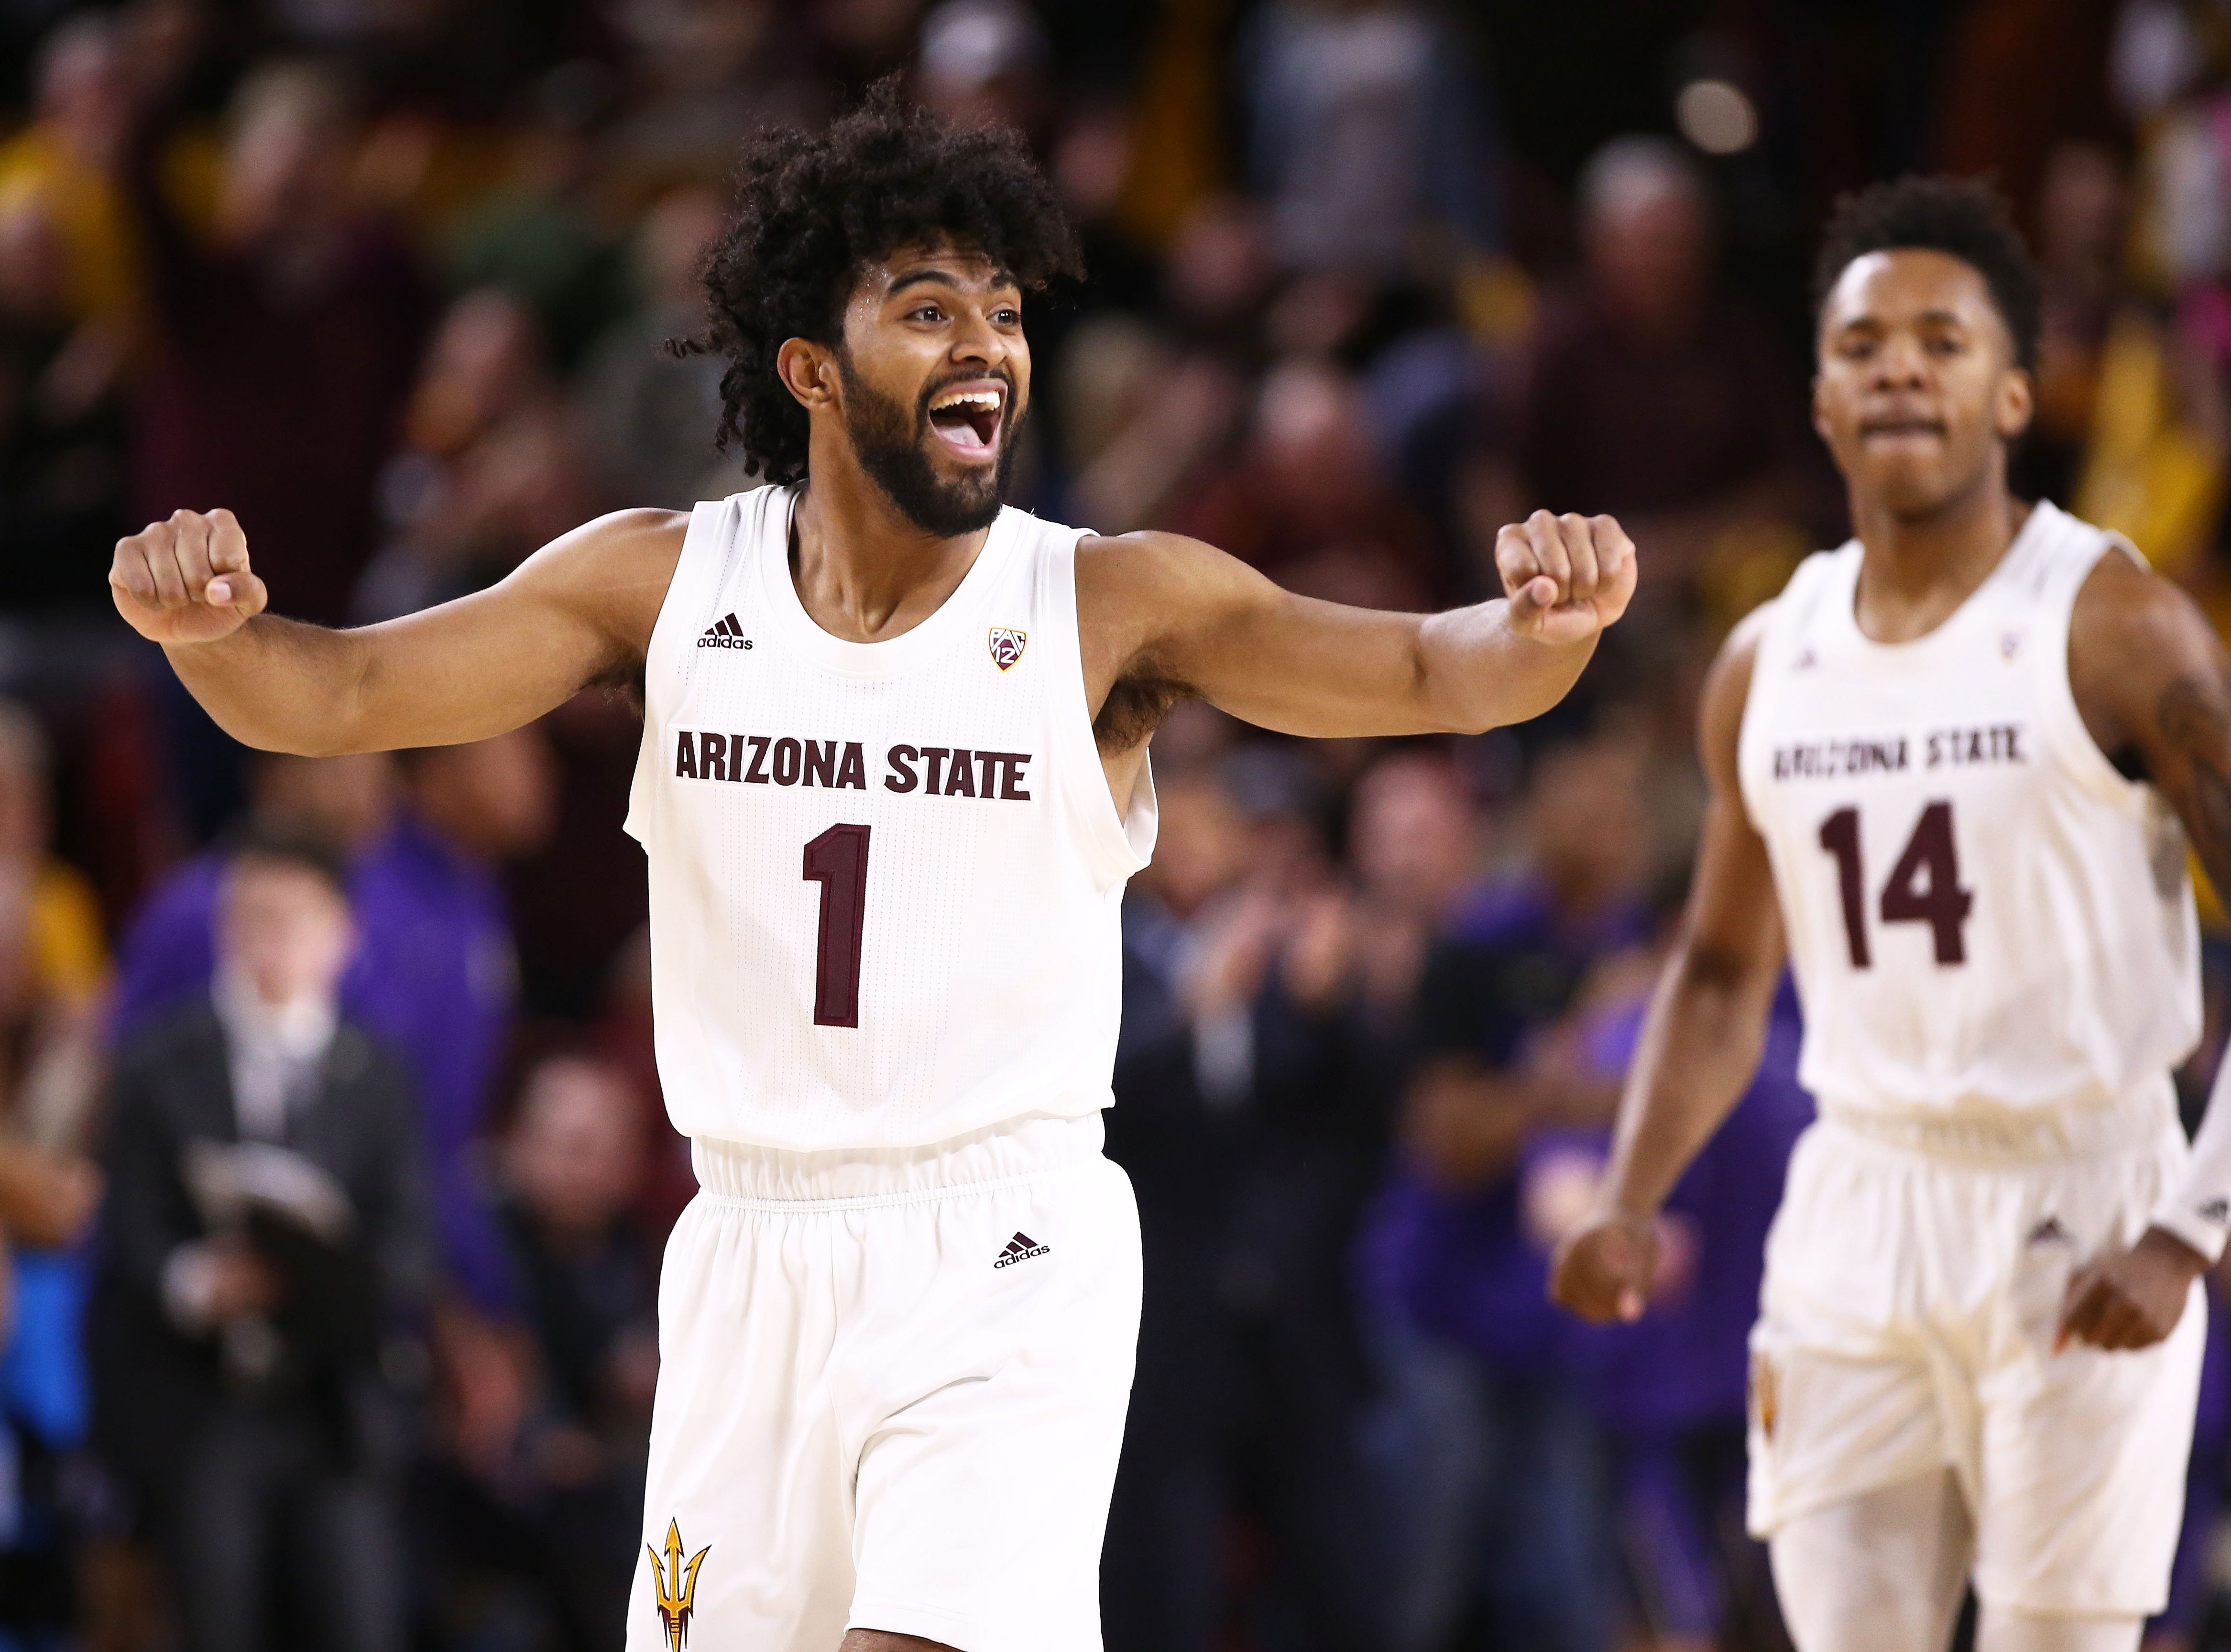 Arizona State Sun Devils guard Remy Martin celebrates a fast start against the Washington Huskies in the first half on Feb. 9 at Wells Fargo Arena in Tempe.